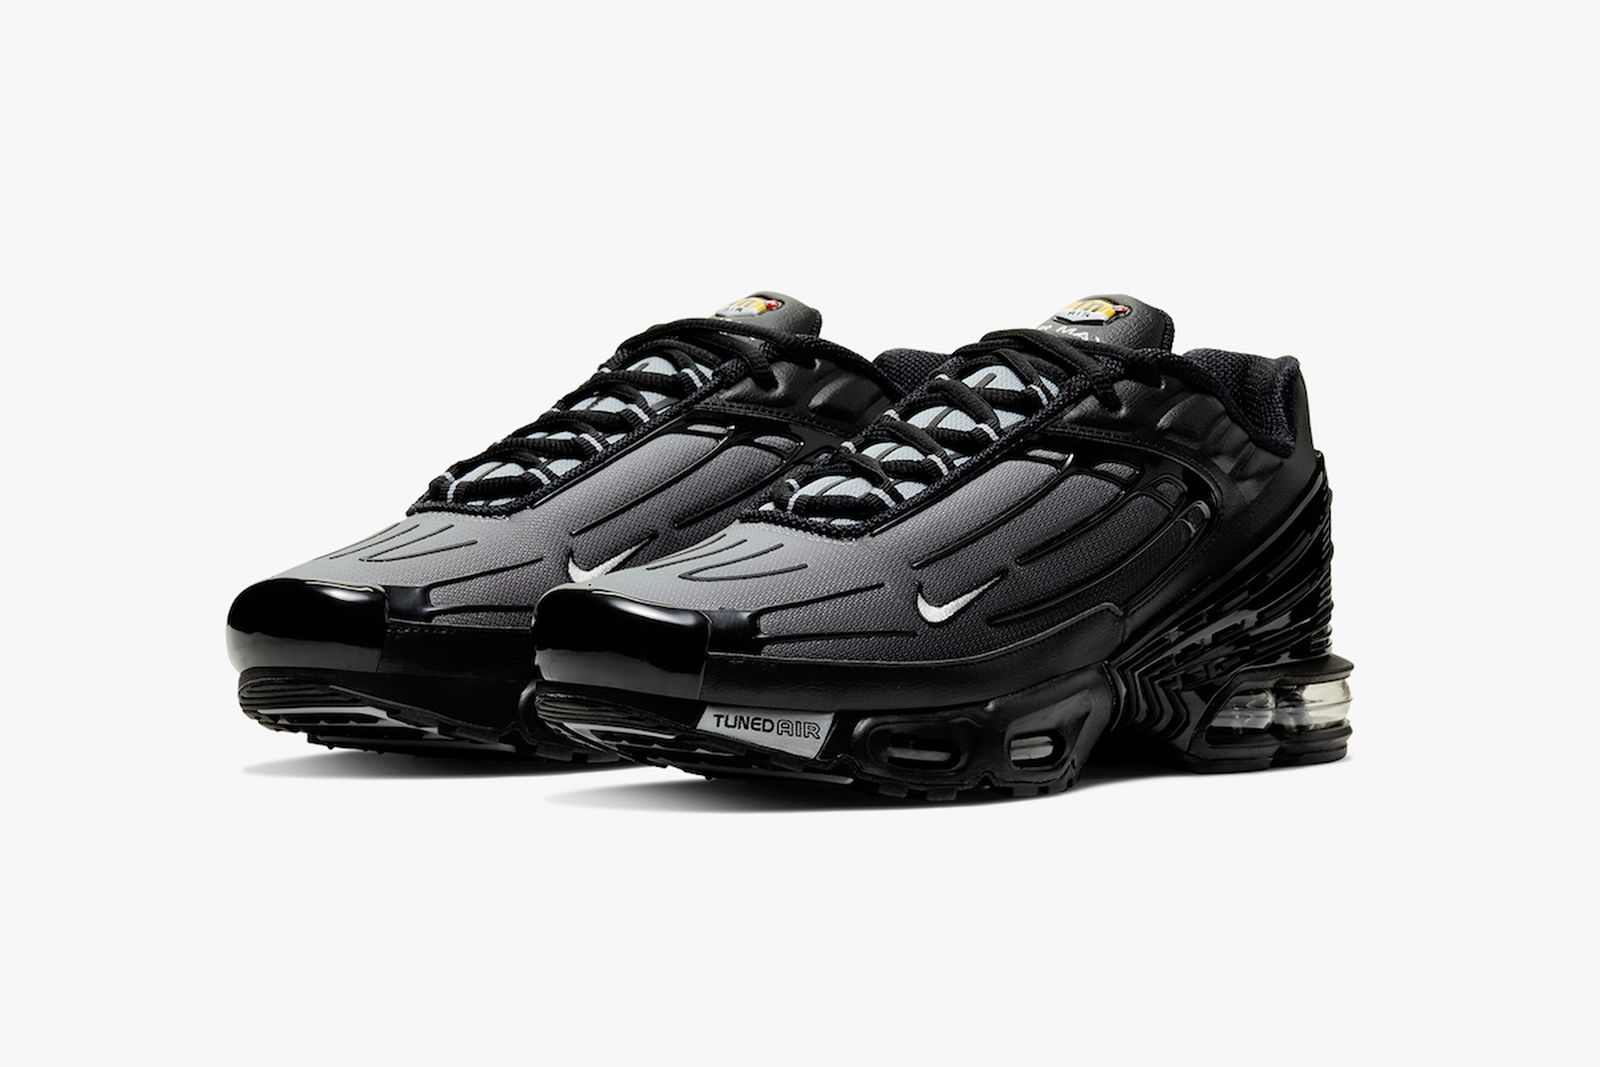 nike-air-max-plus-3-release-date-price-003